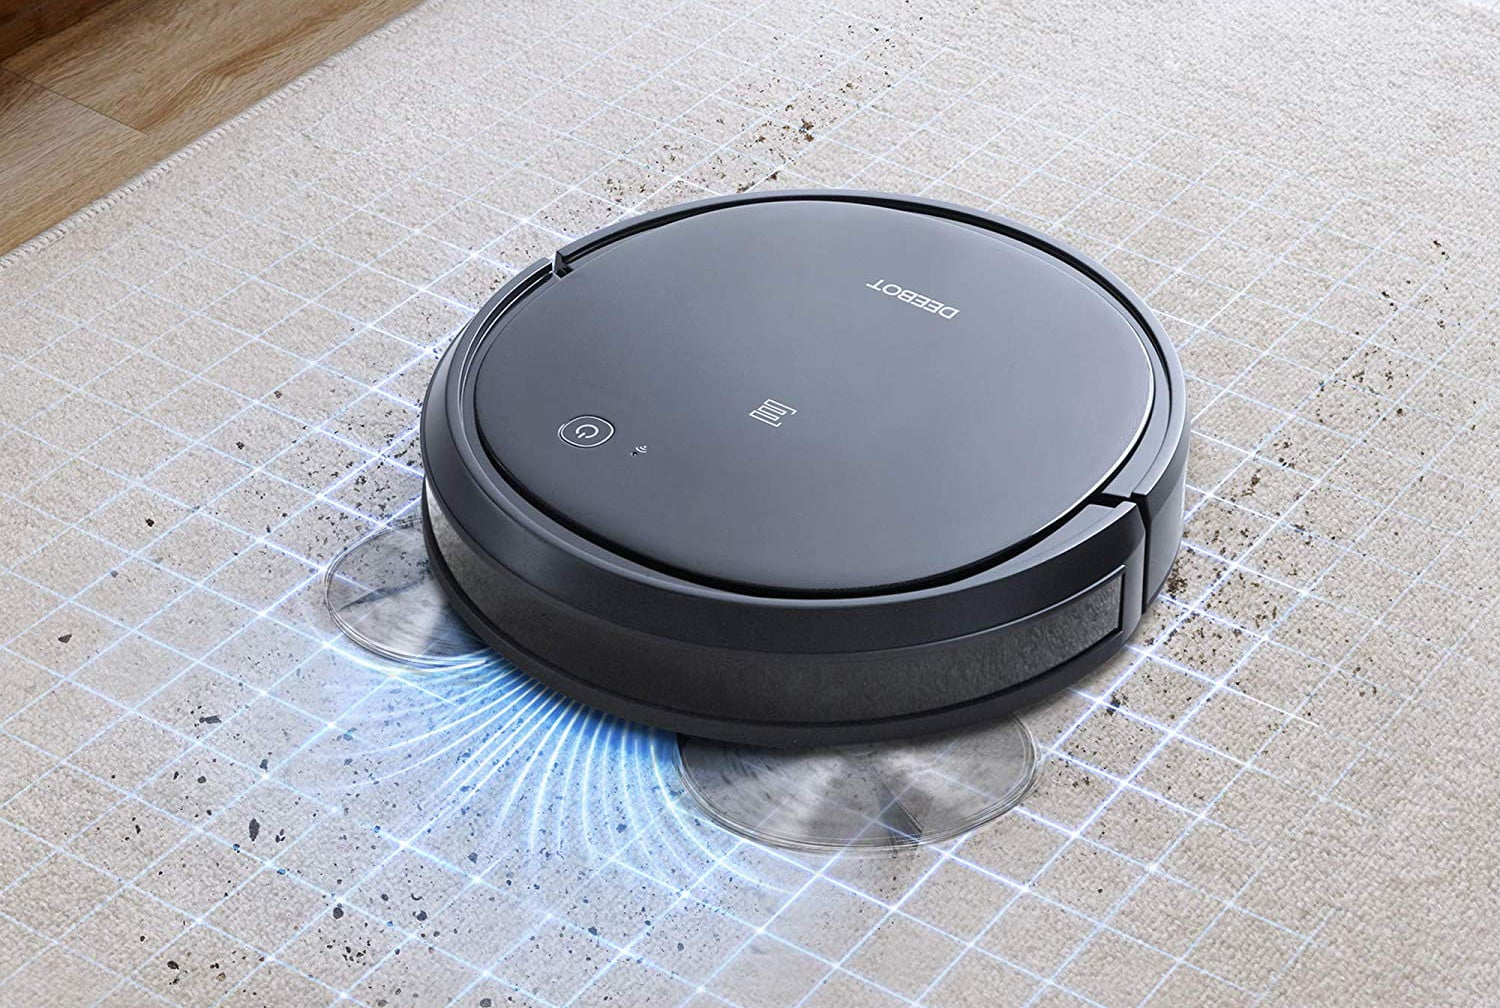 Amazon Slashes Price on Ecovacs Deebot 500 Robot Vac for